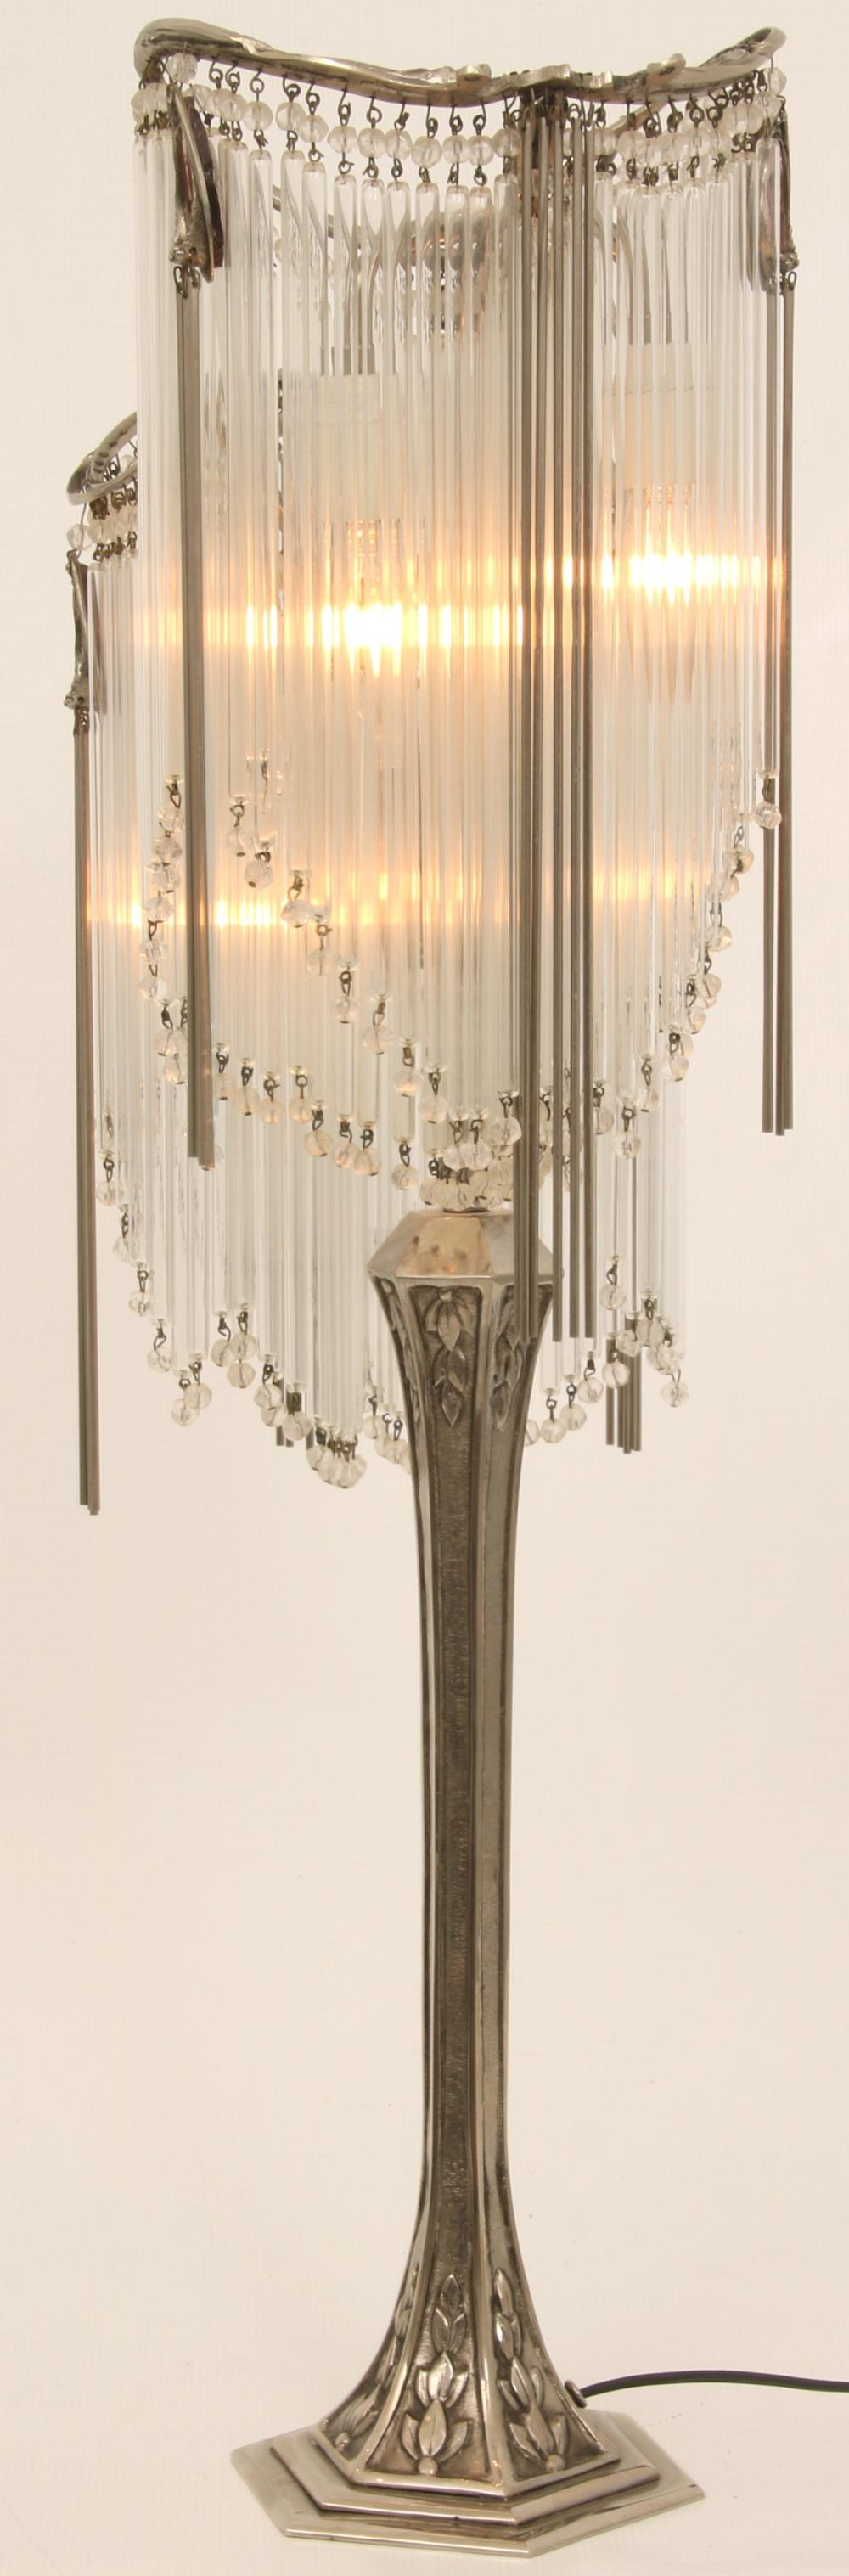 After Hector Guimard Art Nouveau Table Lamp